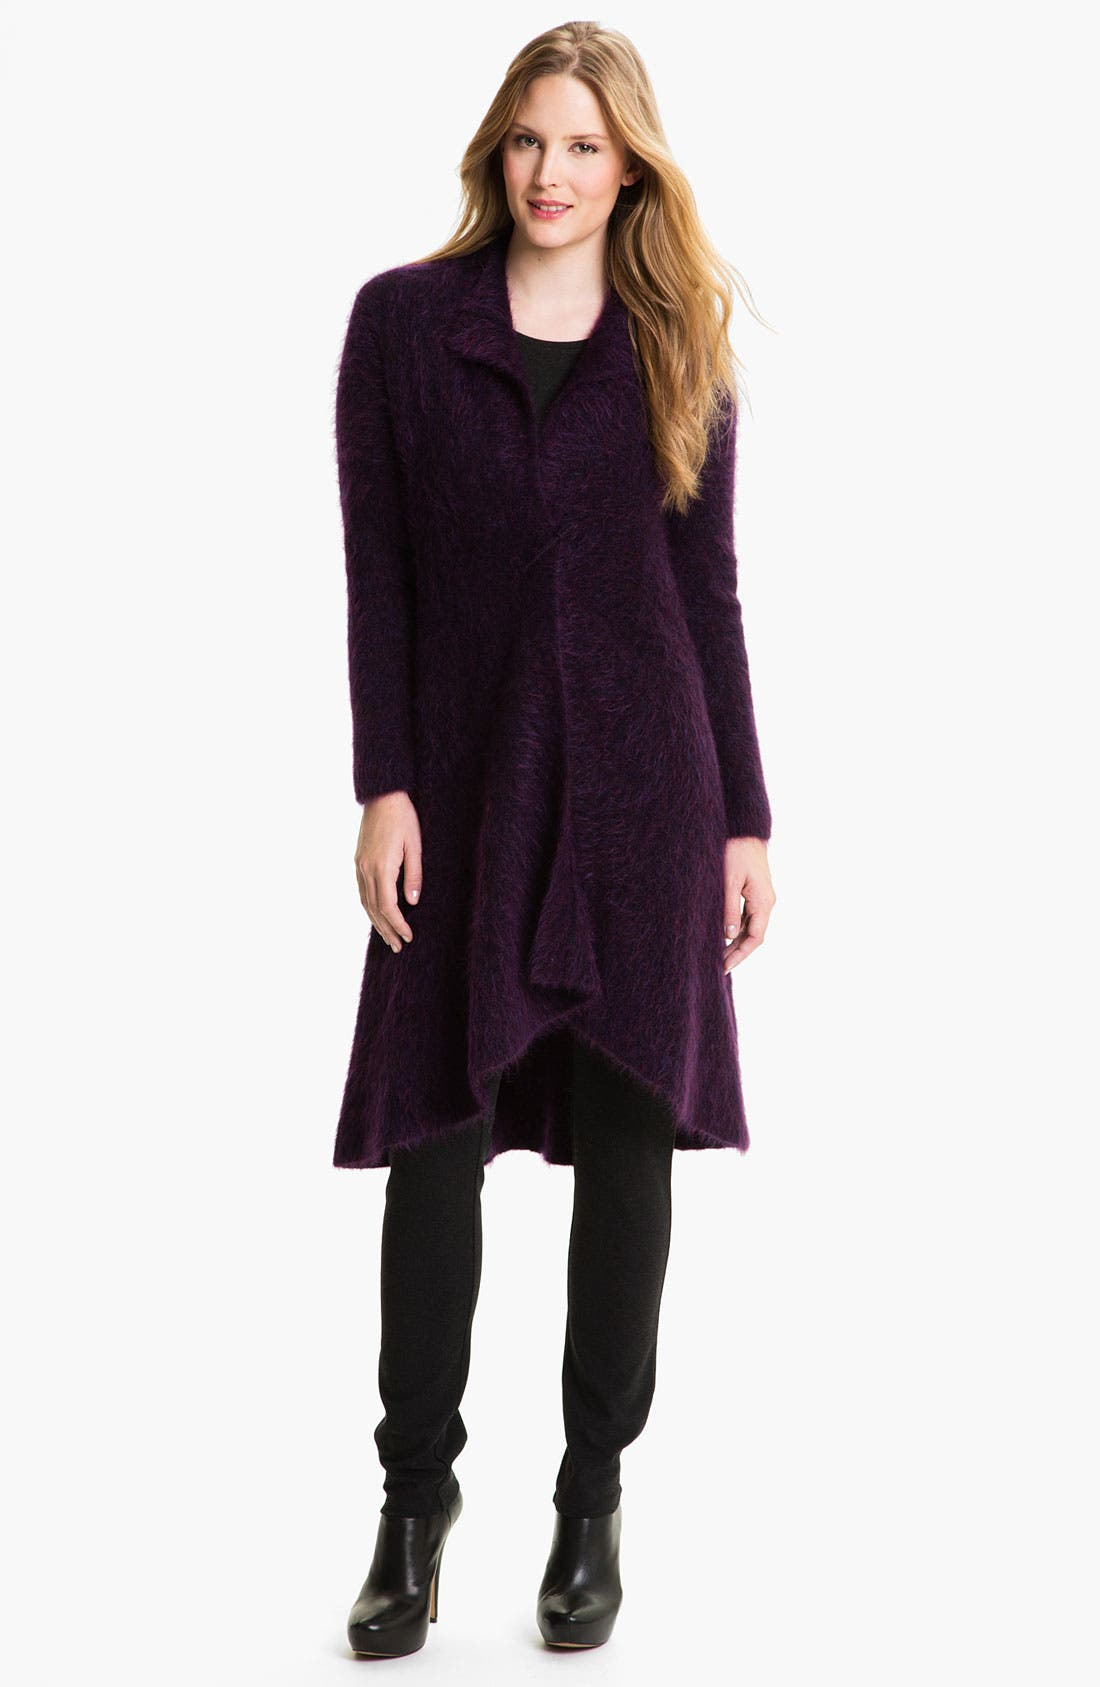 Alternate Image 1 Selected - Eileen Fisher Merino Blend Cardigan (Online Exclusive)